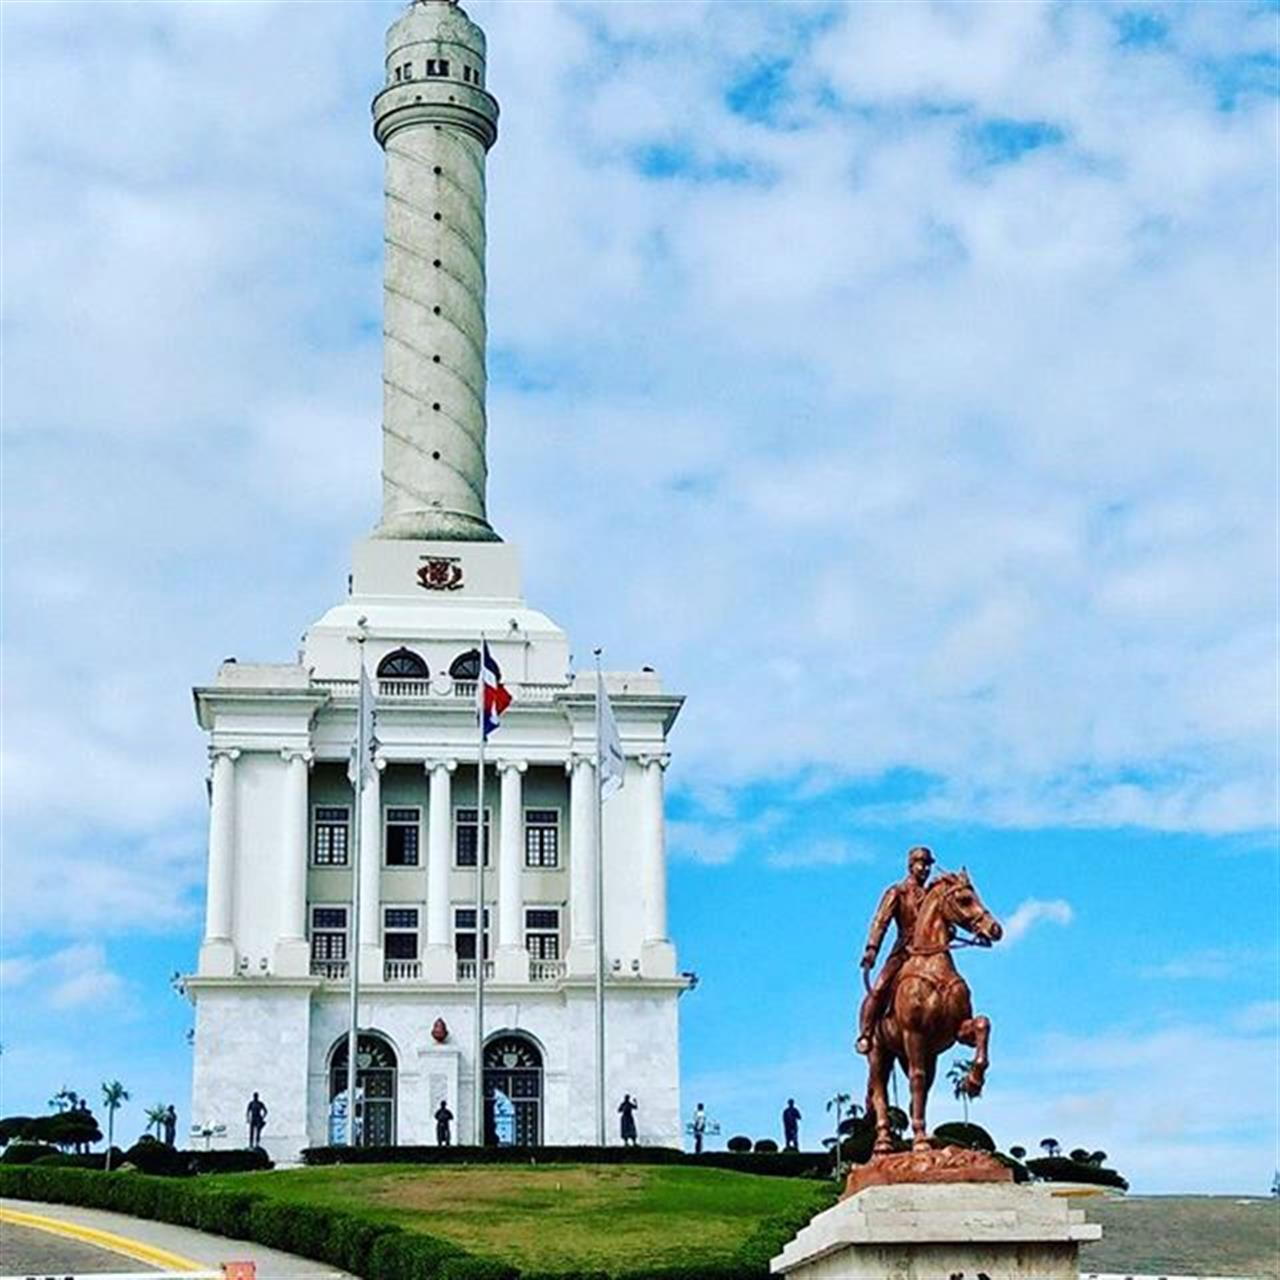 I like to share today the monument in Santiago, second biggest city on the island. #santiago #dominicanrepublic #monument #leadingrelocal #history #culture